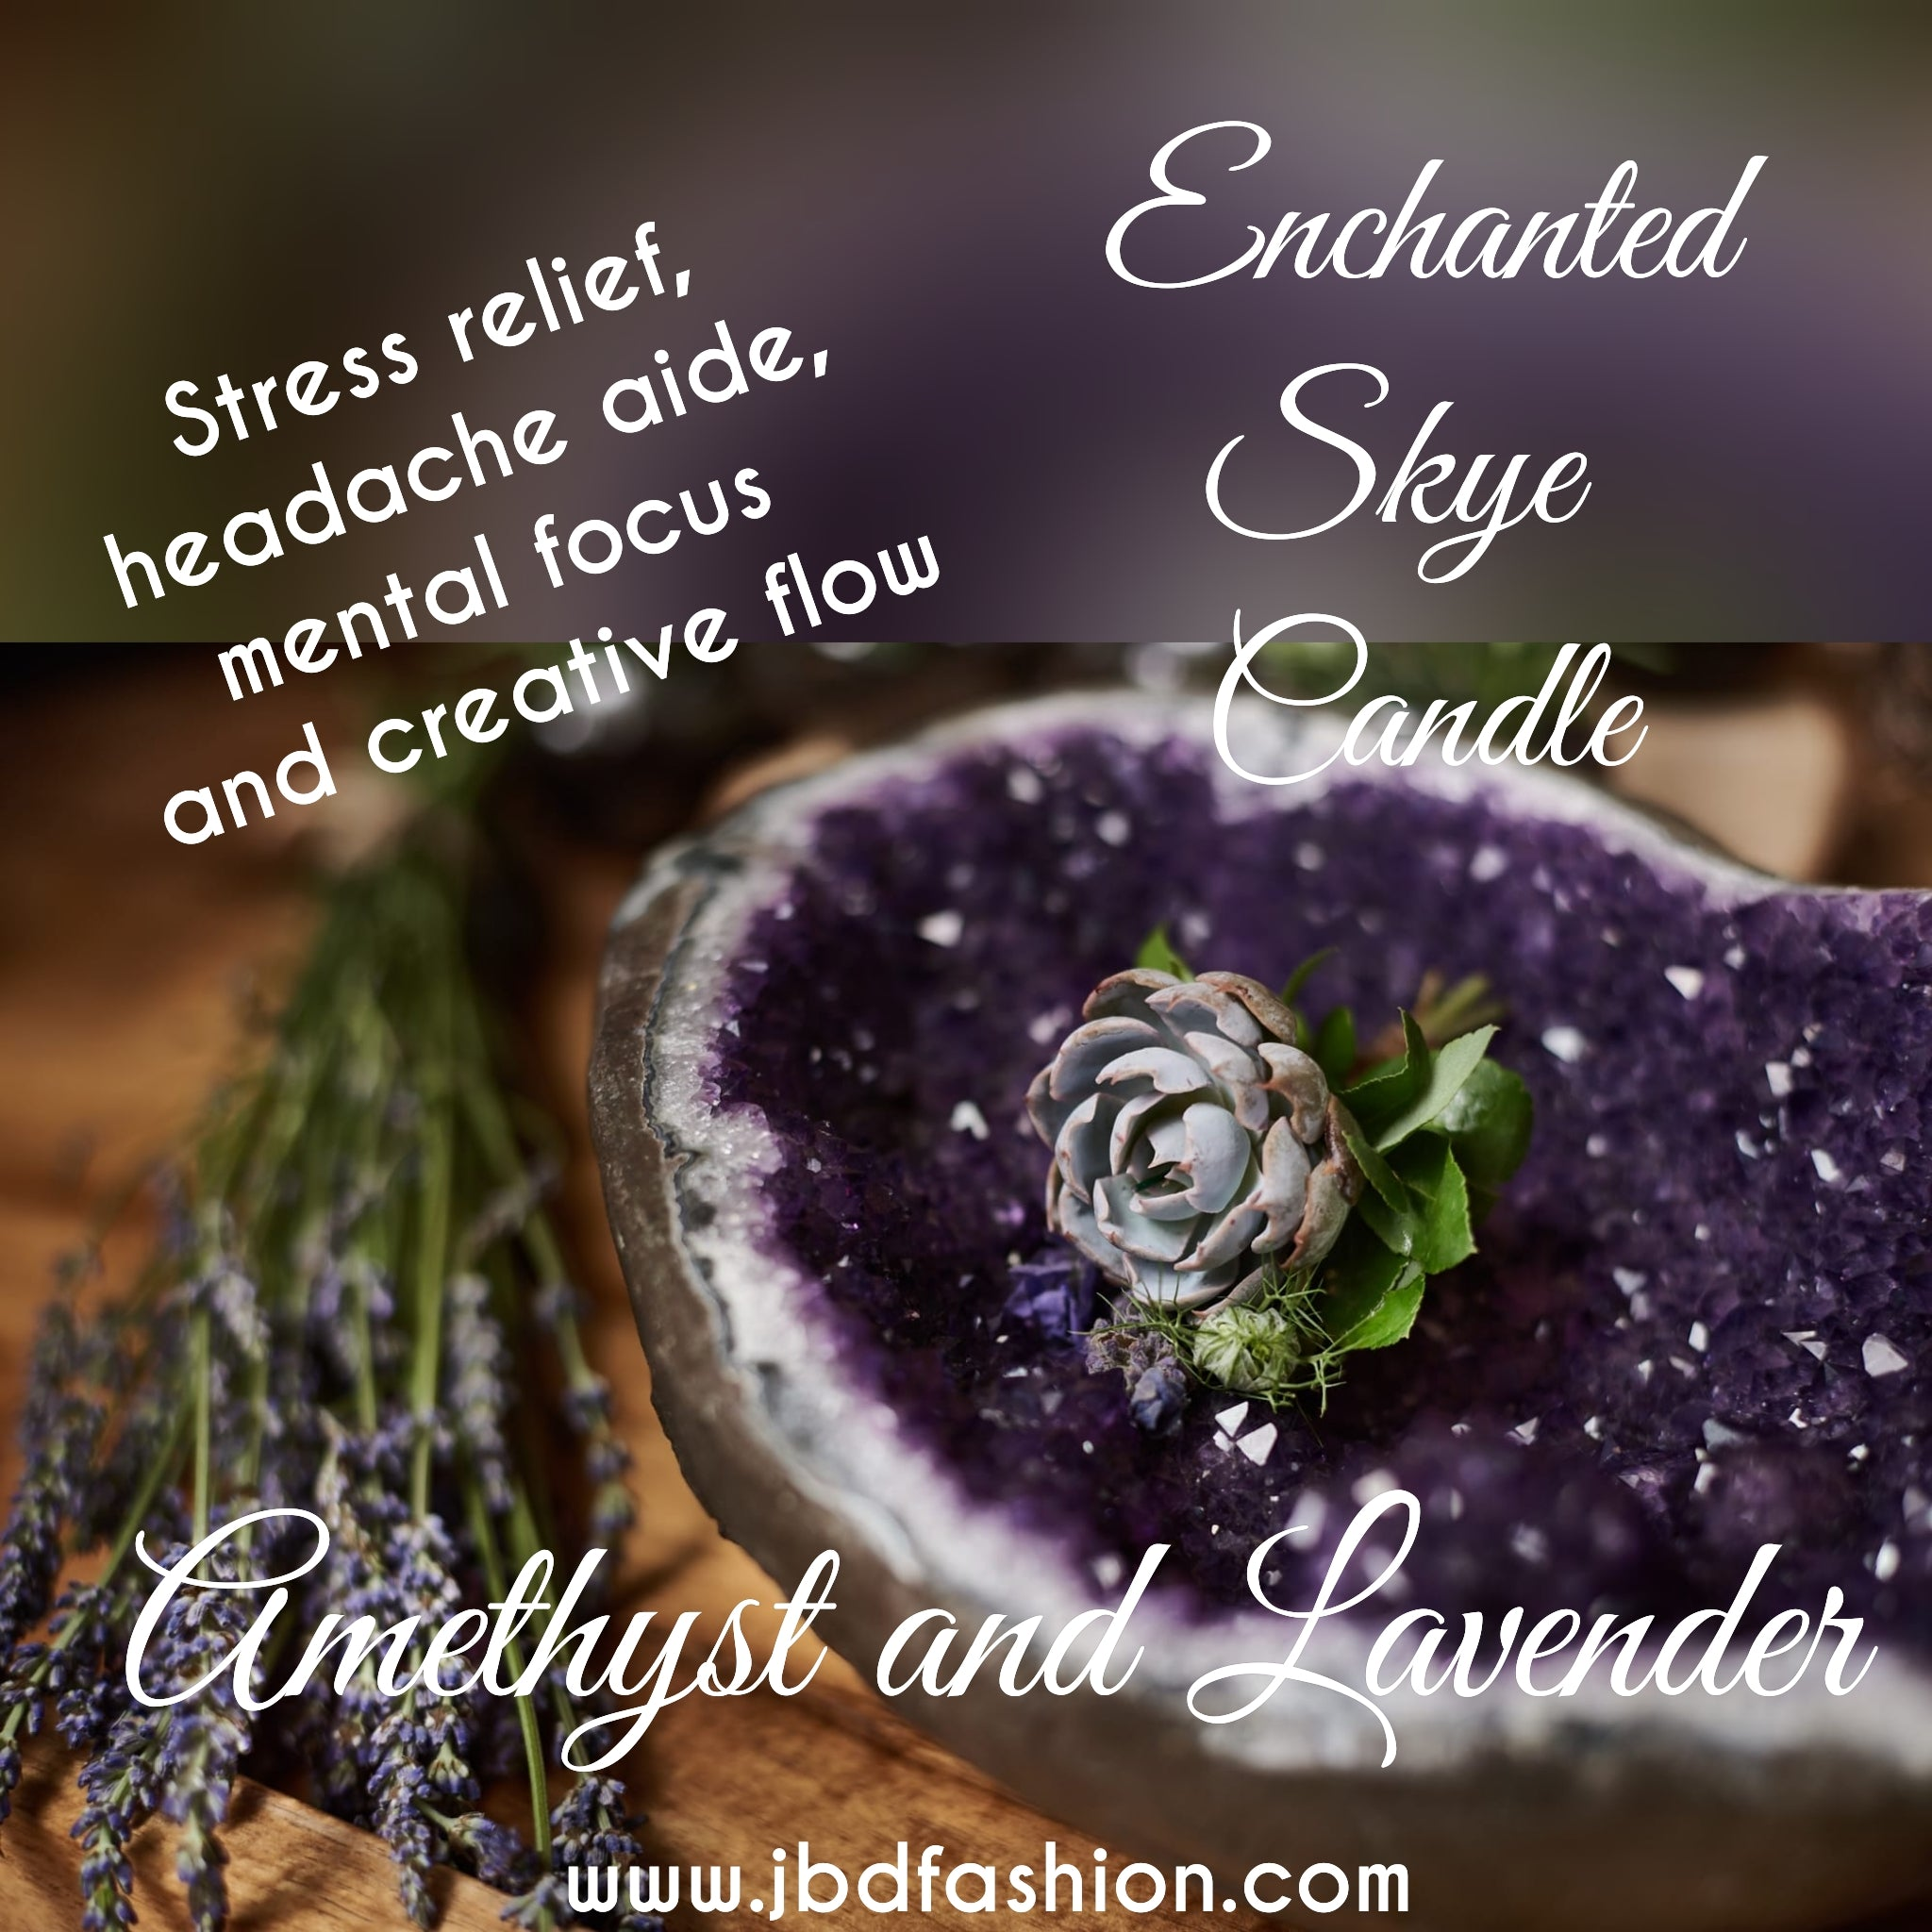 Enchanted Skye Candle - Amethyst and Lavender - JBD